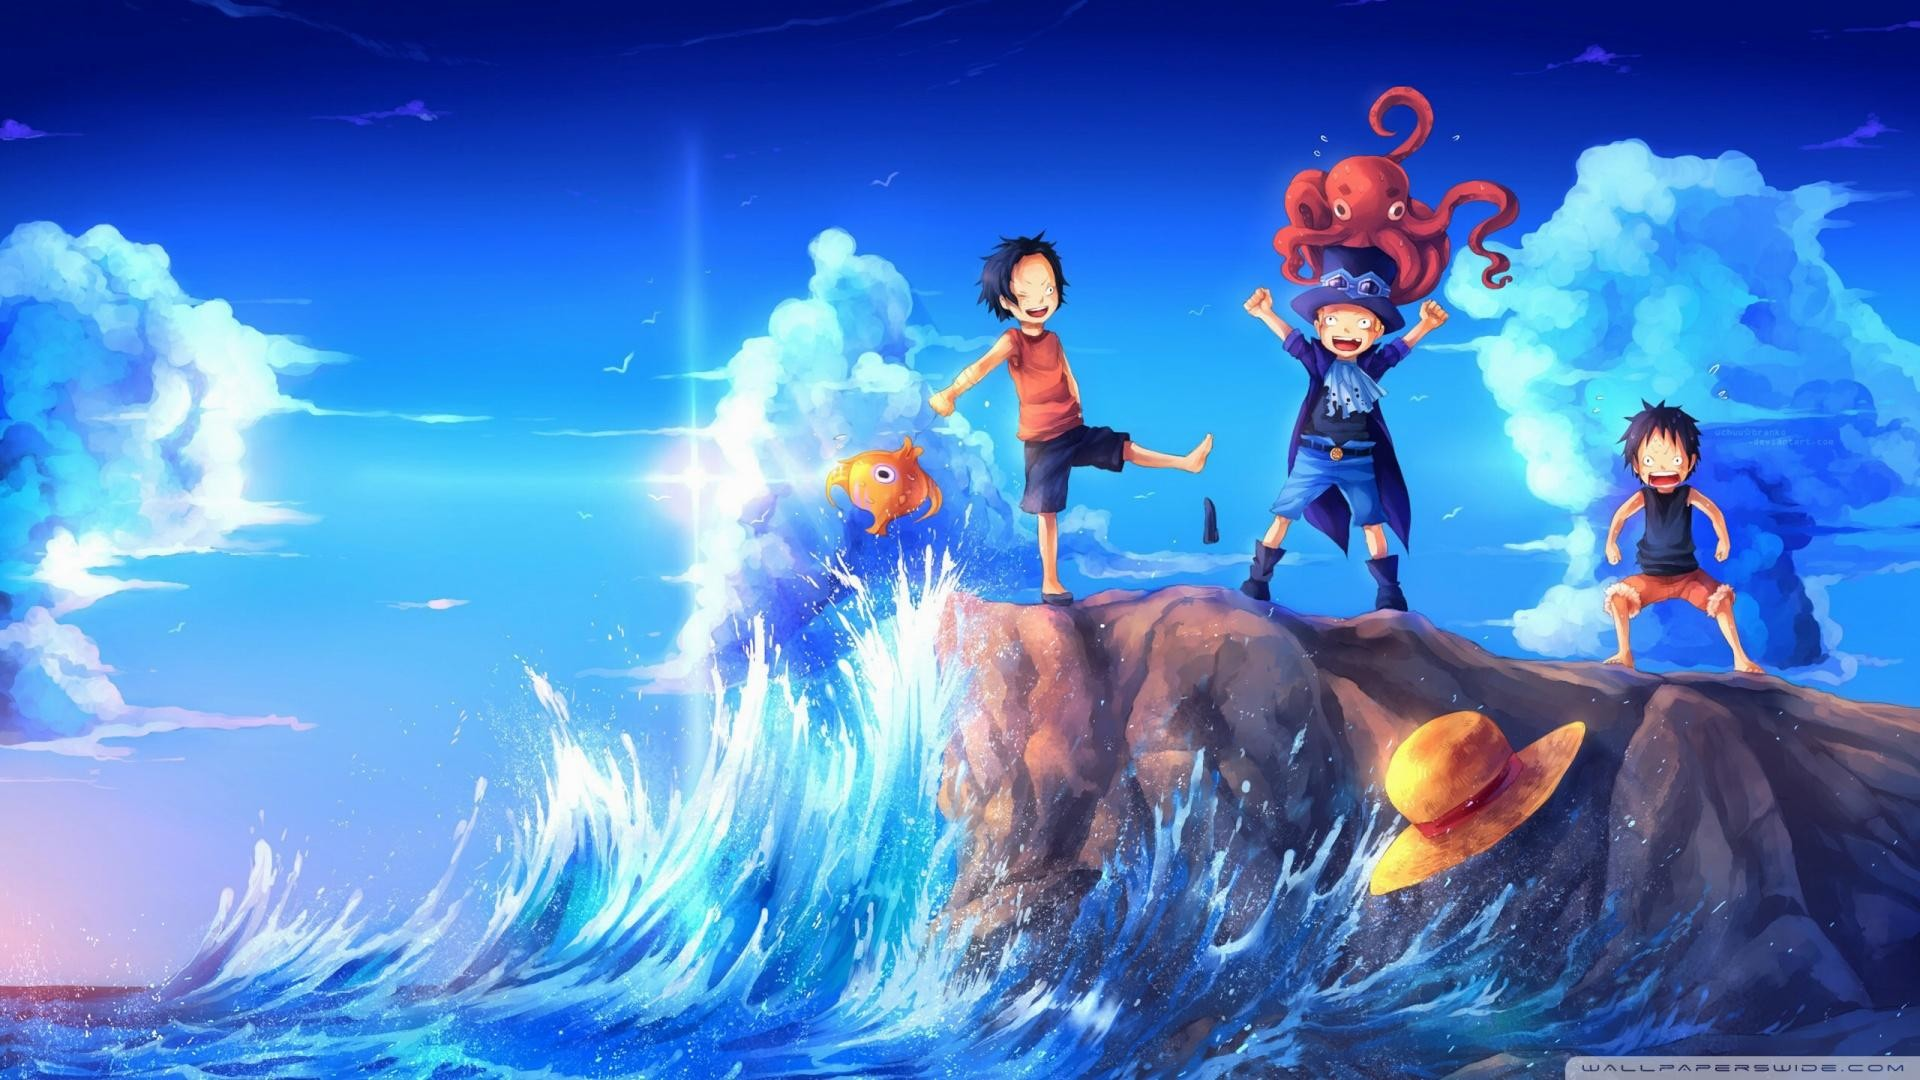 1920x1080 One-Piece-Art-Sabo-Portgas-D.Ace-Luffy-